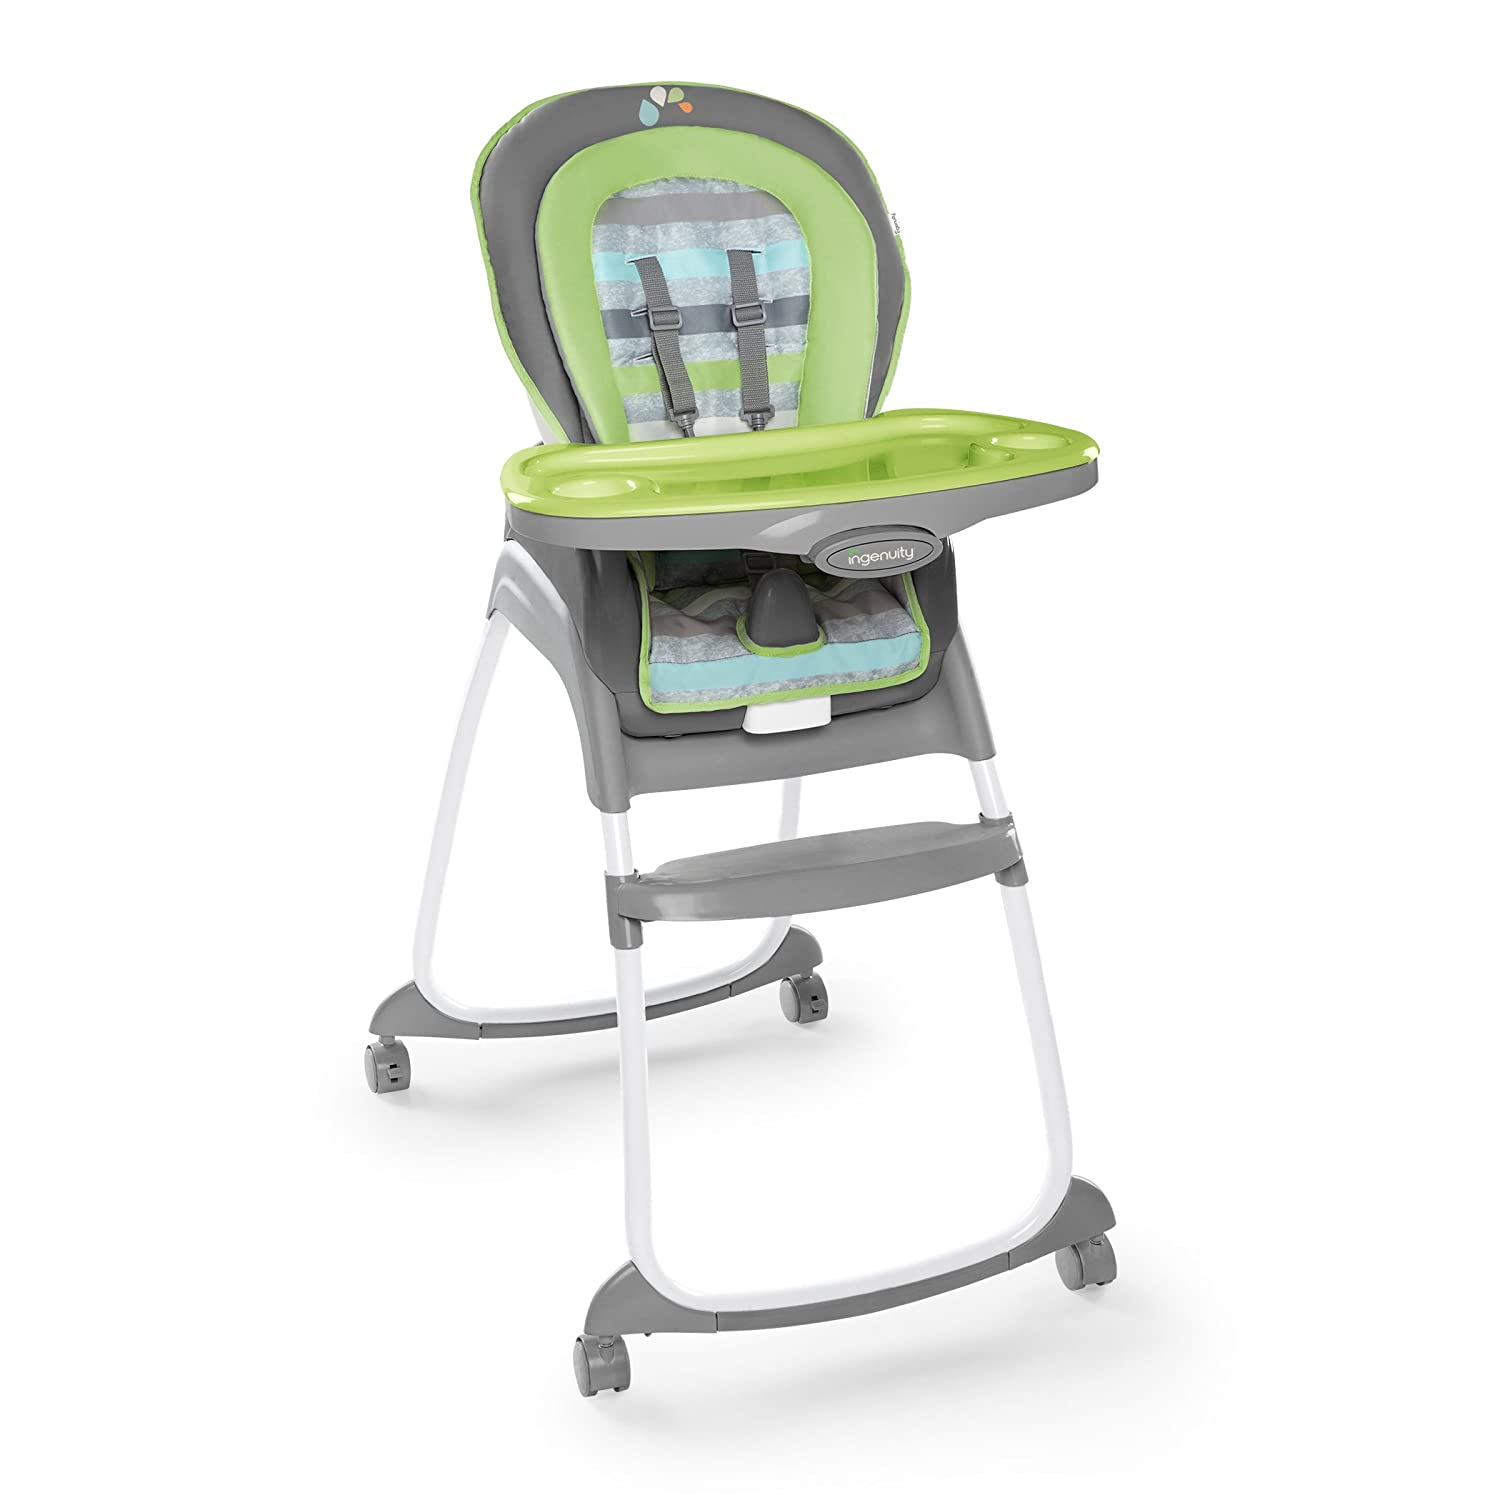 7d69ac10a2ba Amazon.com   Ingenuity Trio 3-in-1 High Chair - Vesper 4-Wheel - High Chair